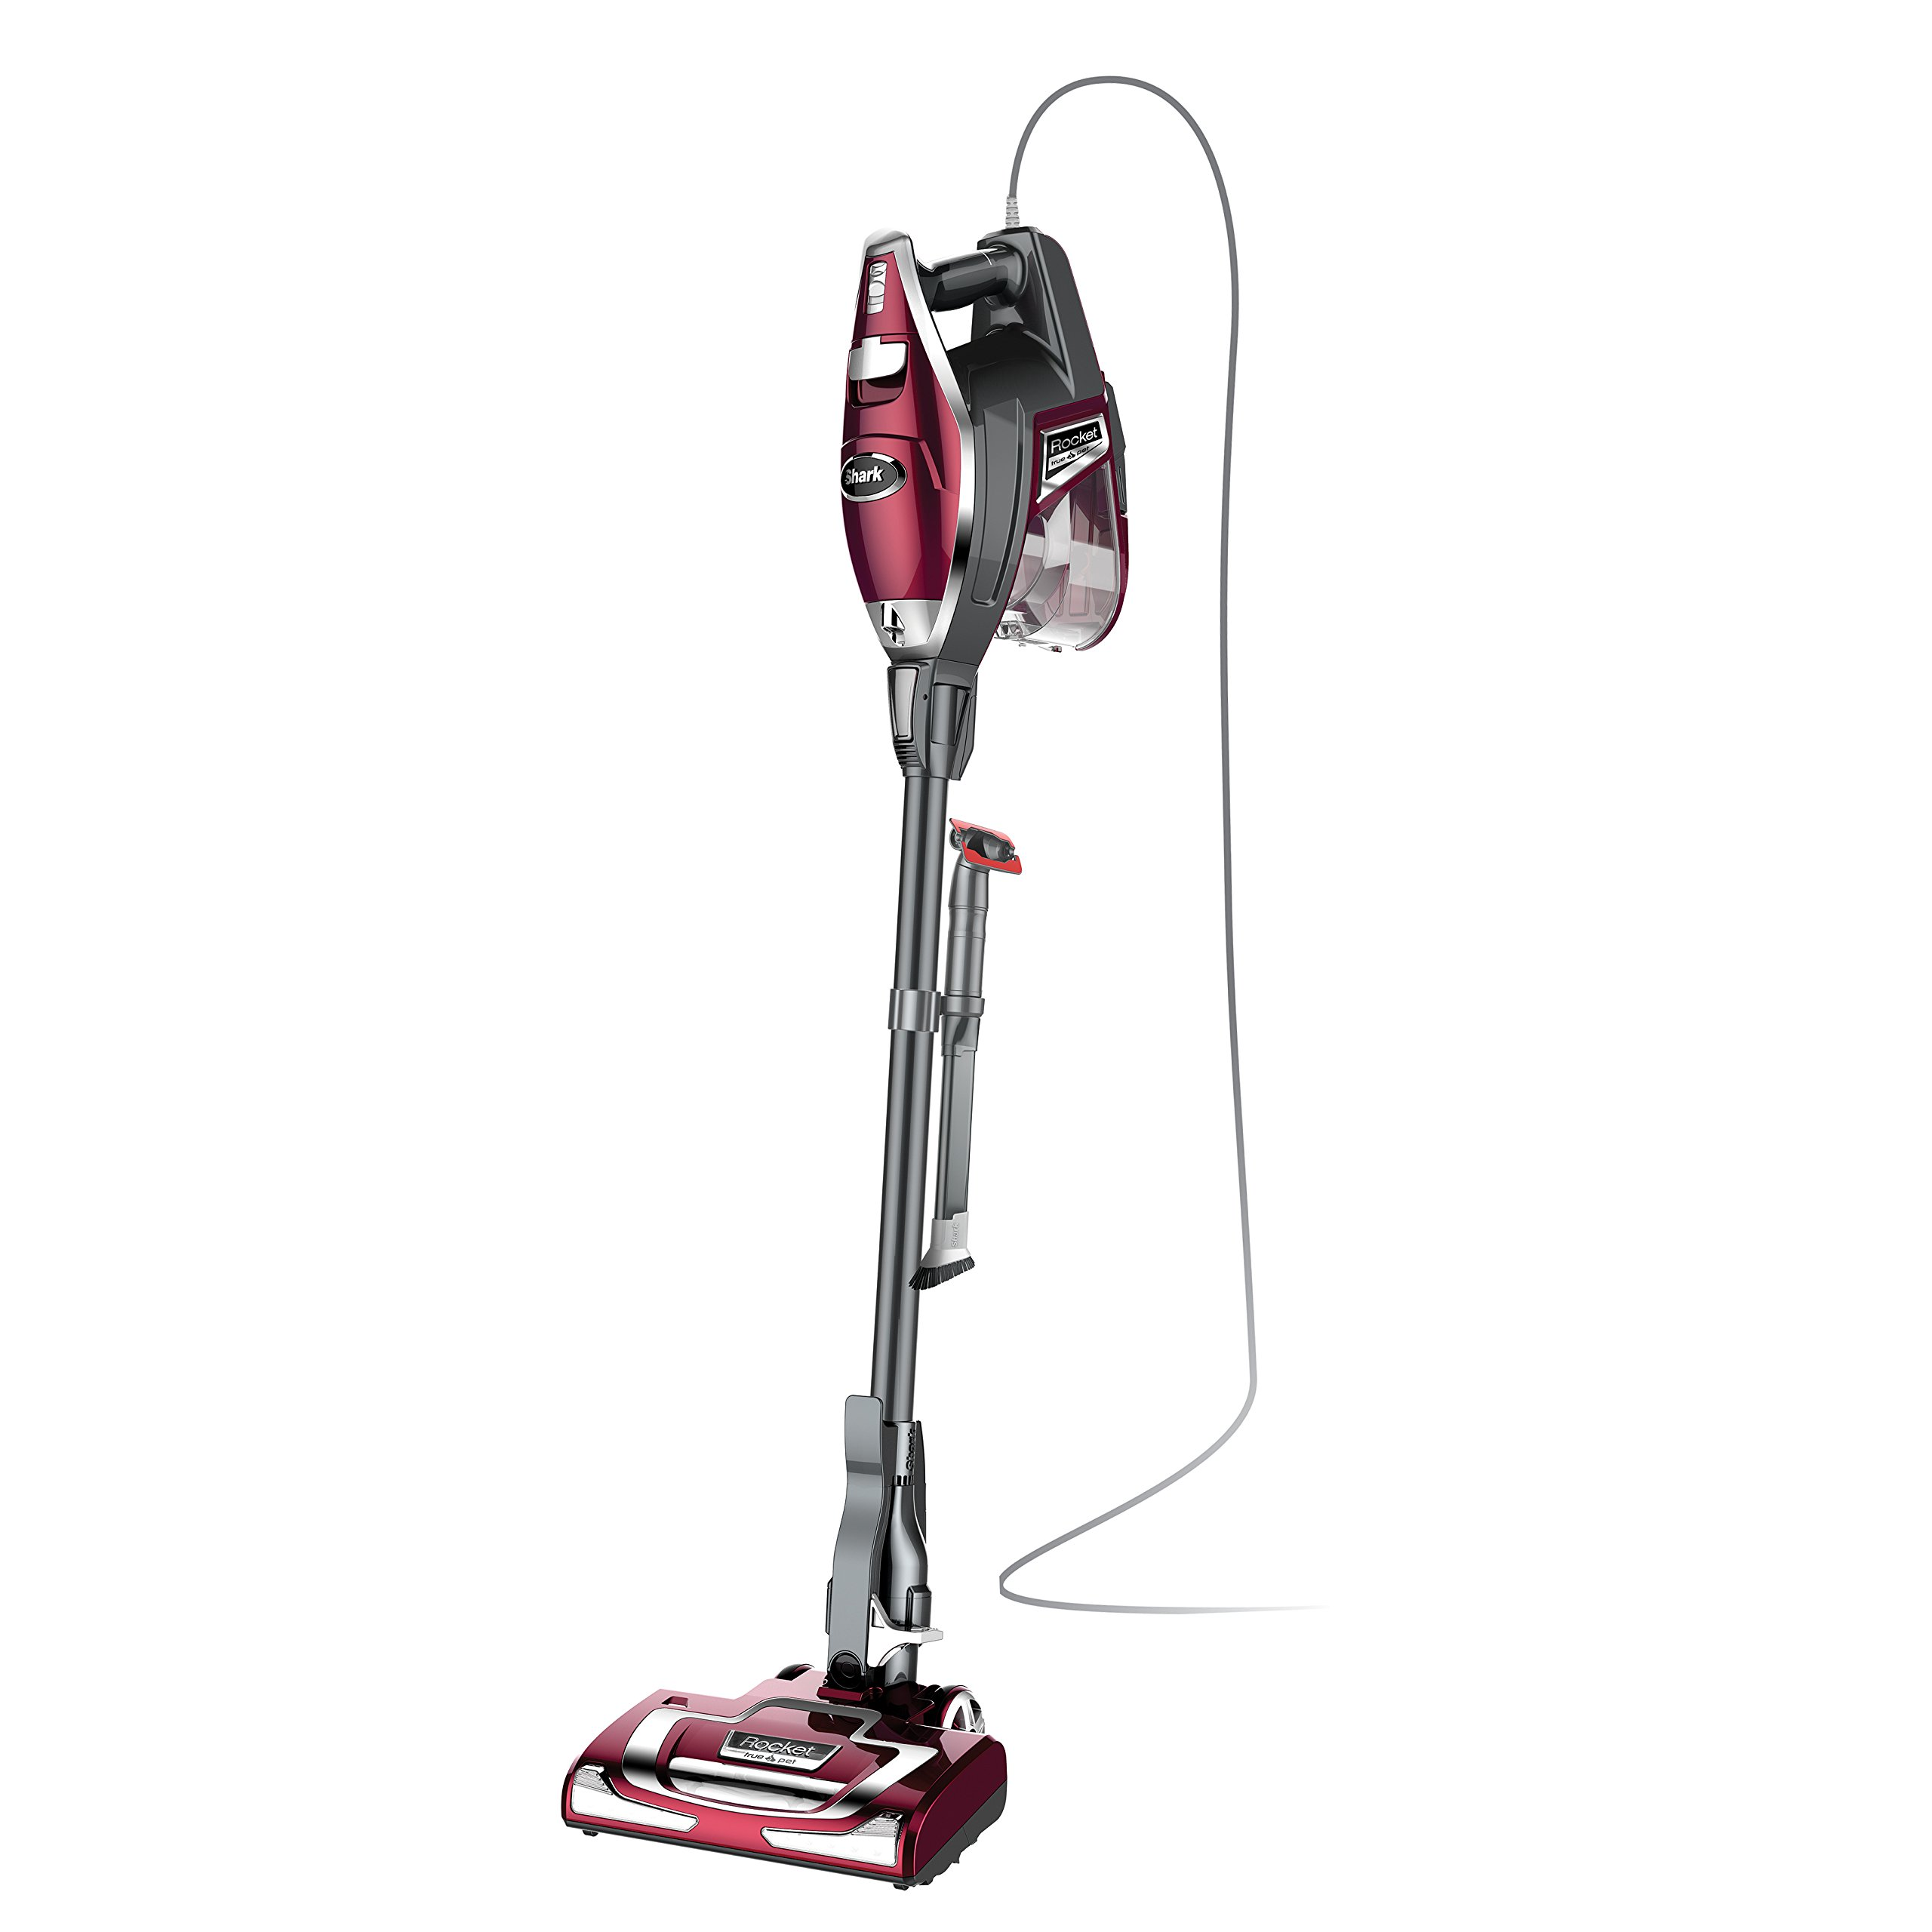 Shark Rocket TruePet Ultra-Light Upright Corded Vacuum, Bordeaux (HV322) by SharkNinja